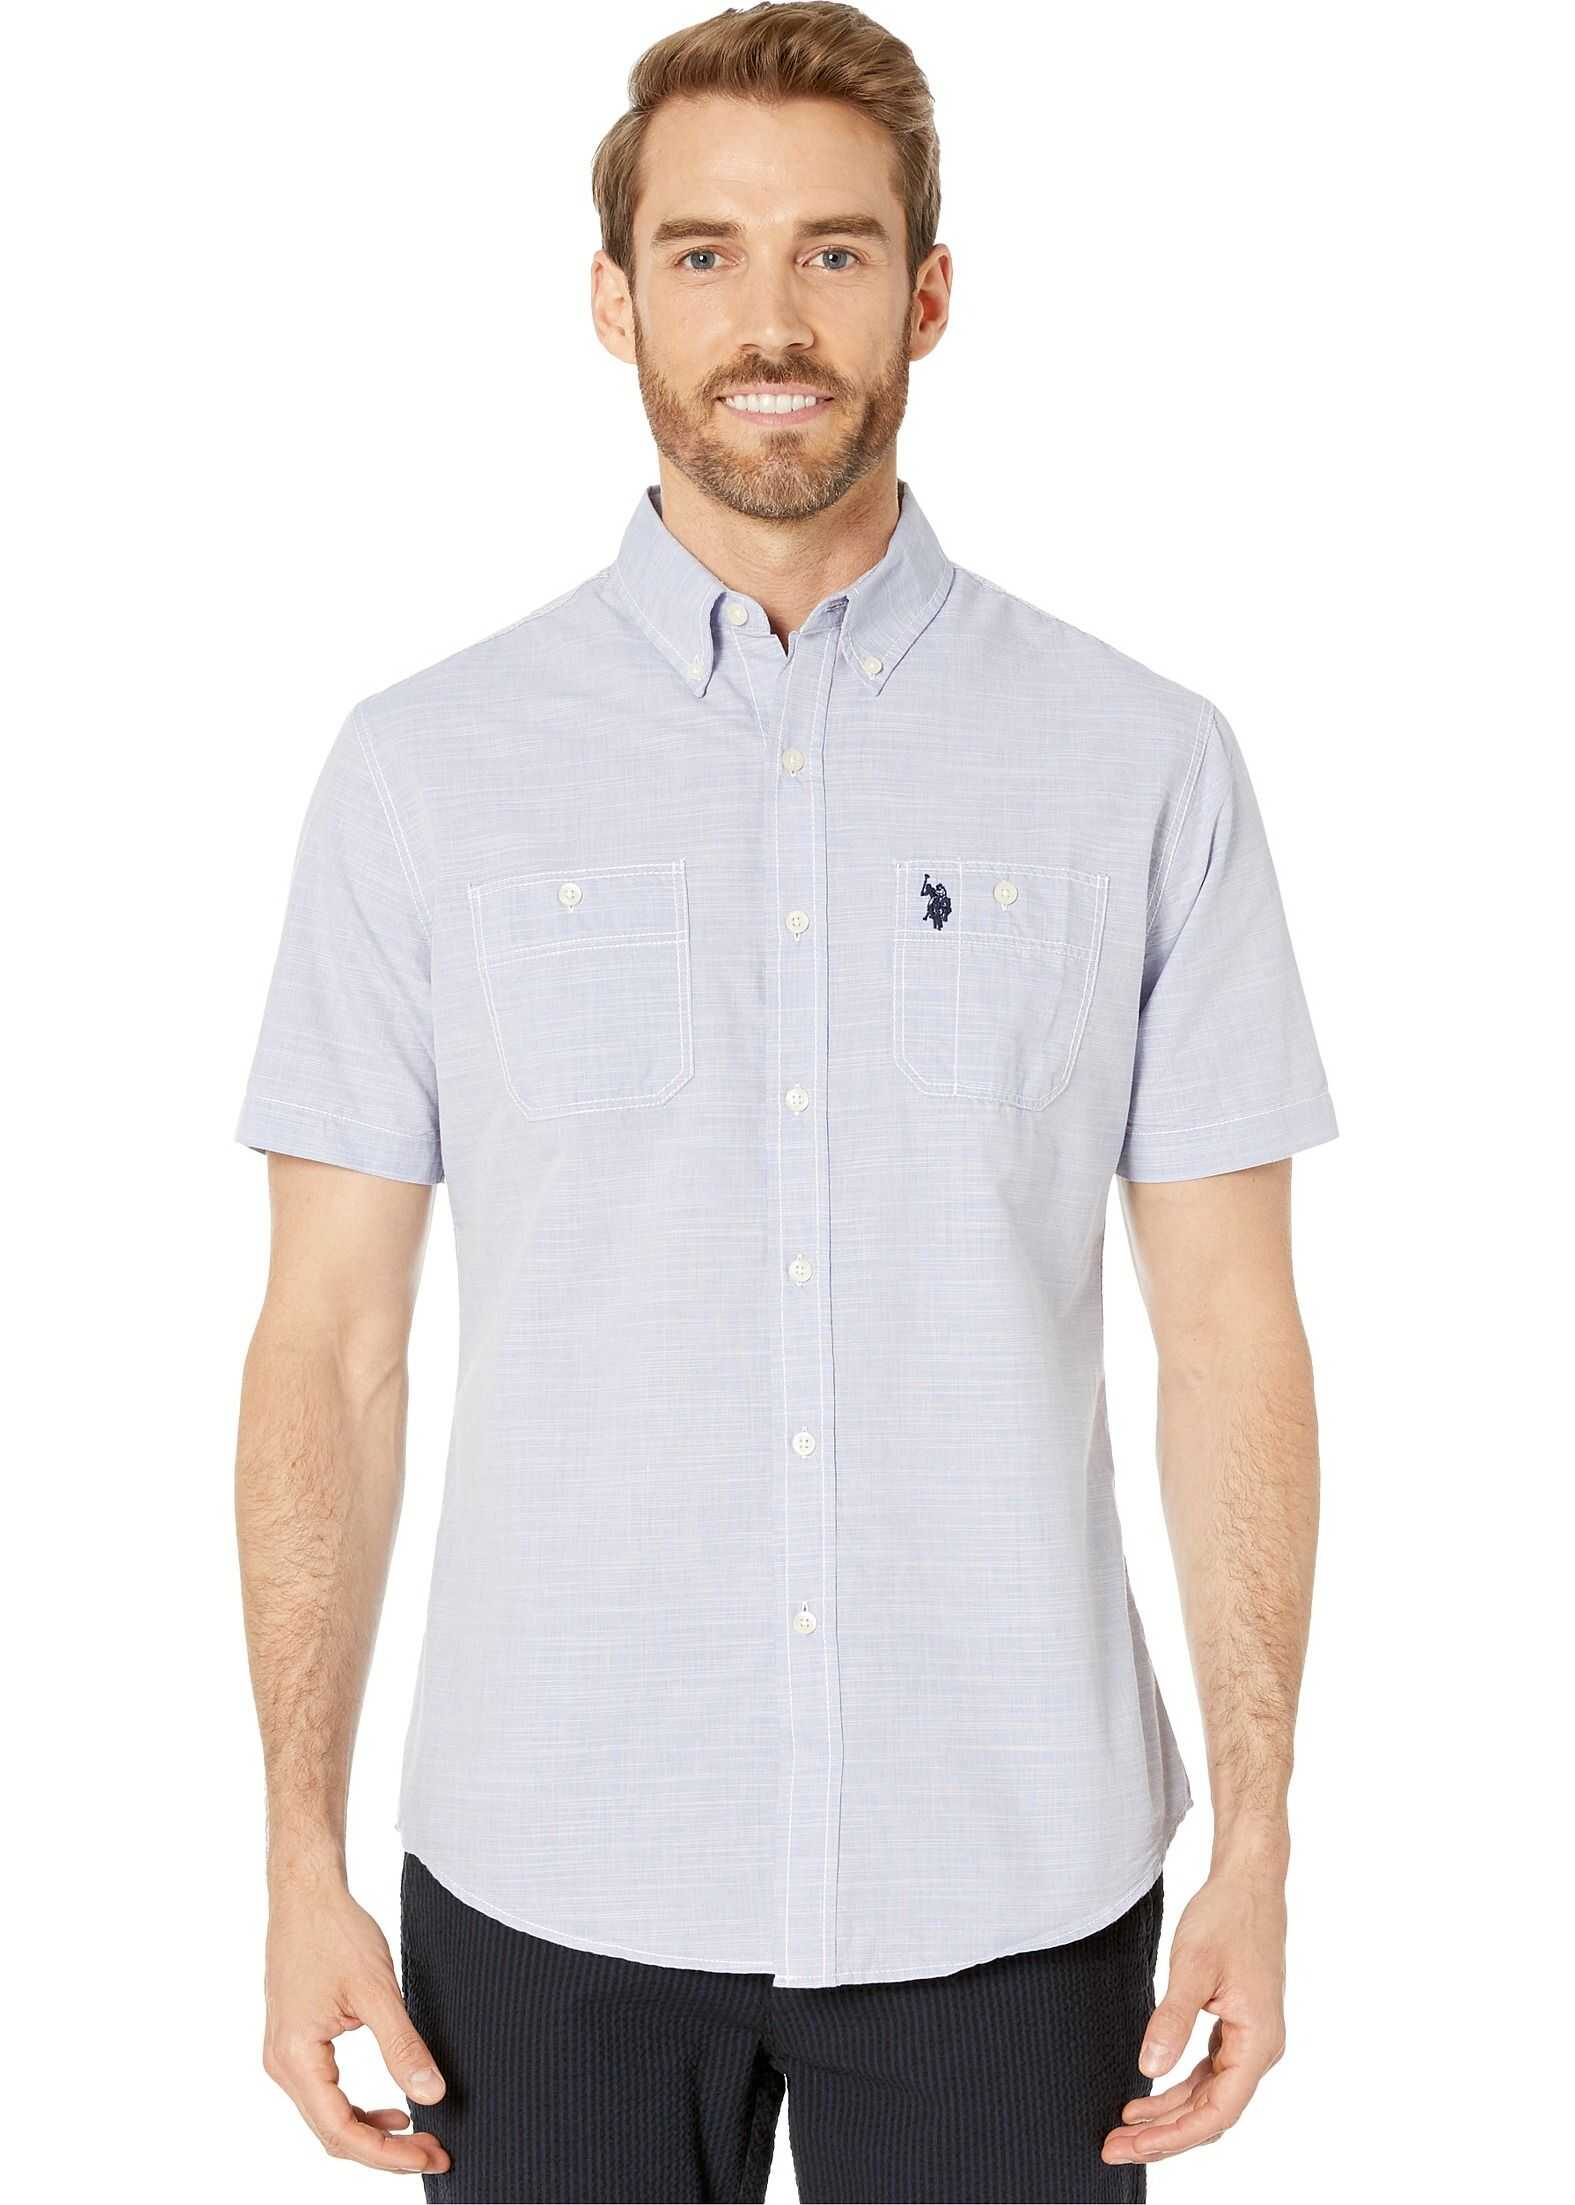 U.S. POLO ASSN. Short Sleeve Woven Wedding Blue